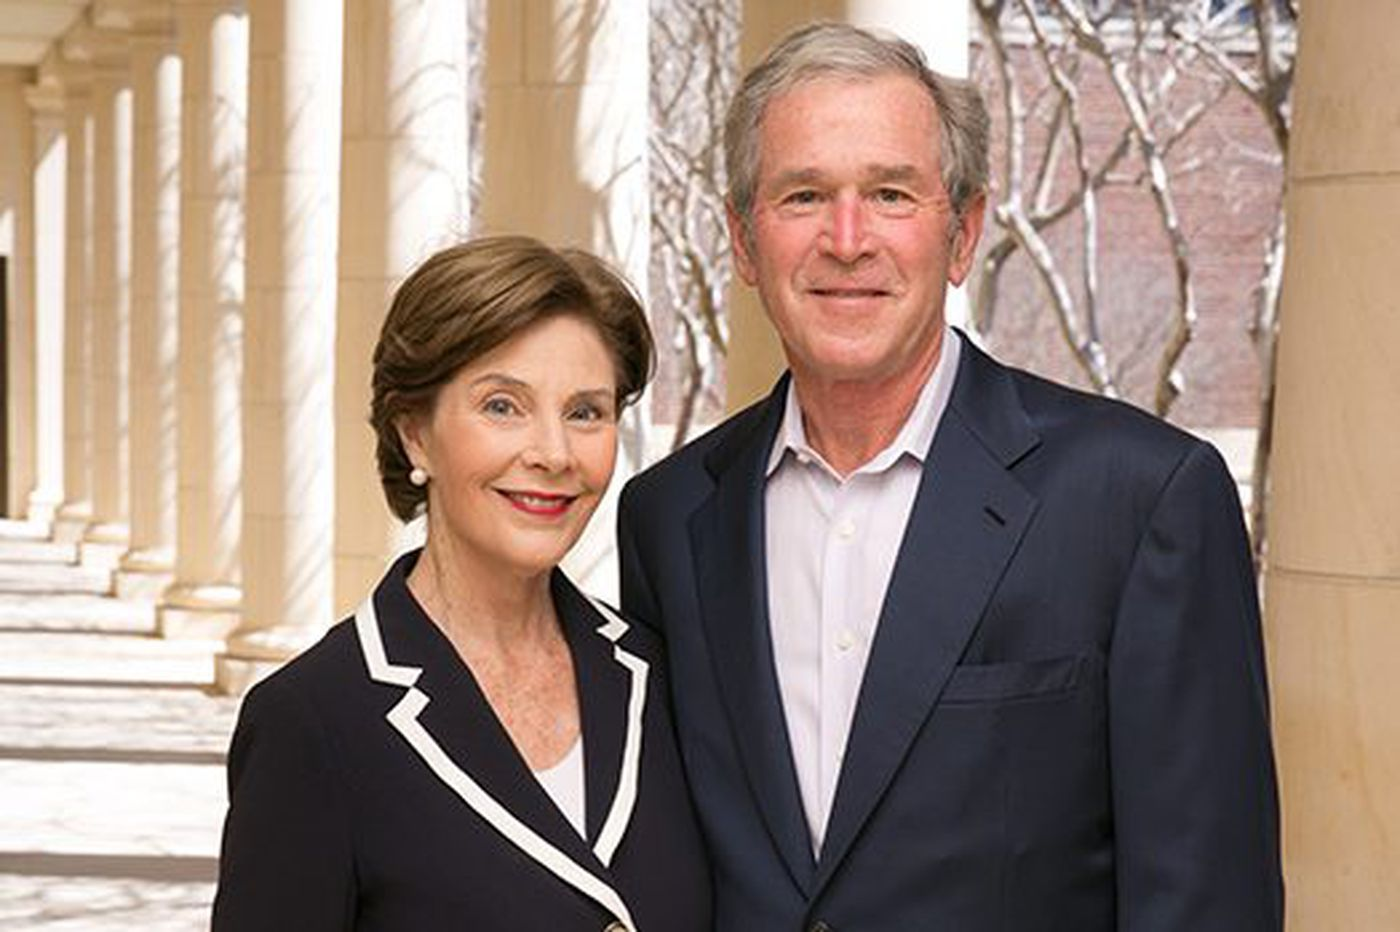 Former President George W. Bush, Laura Bush named recipients of 2018 Liberty Medal